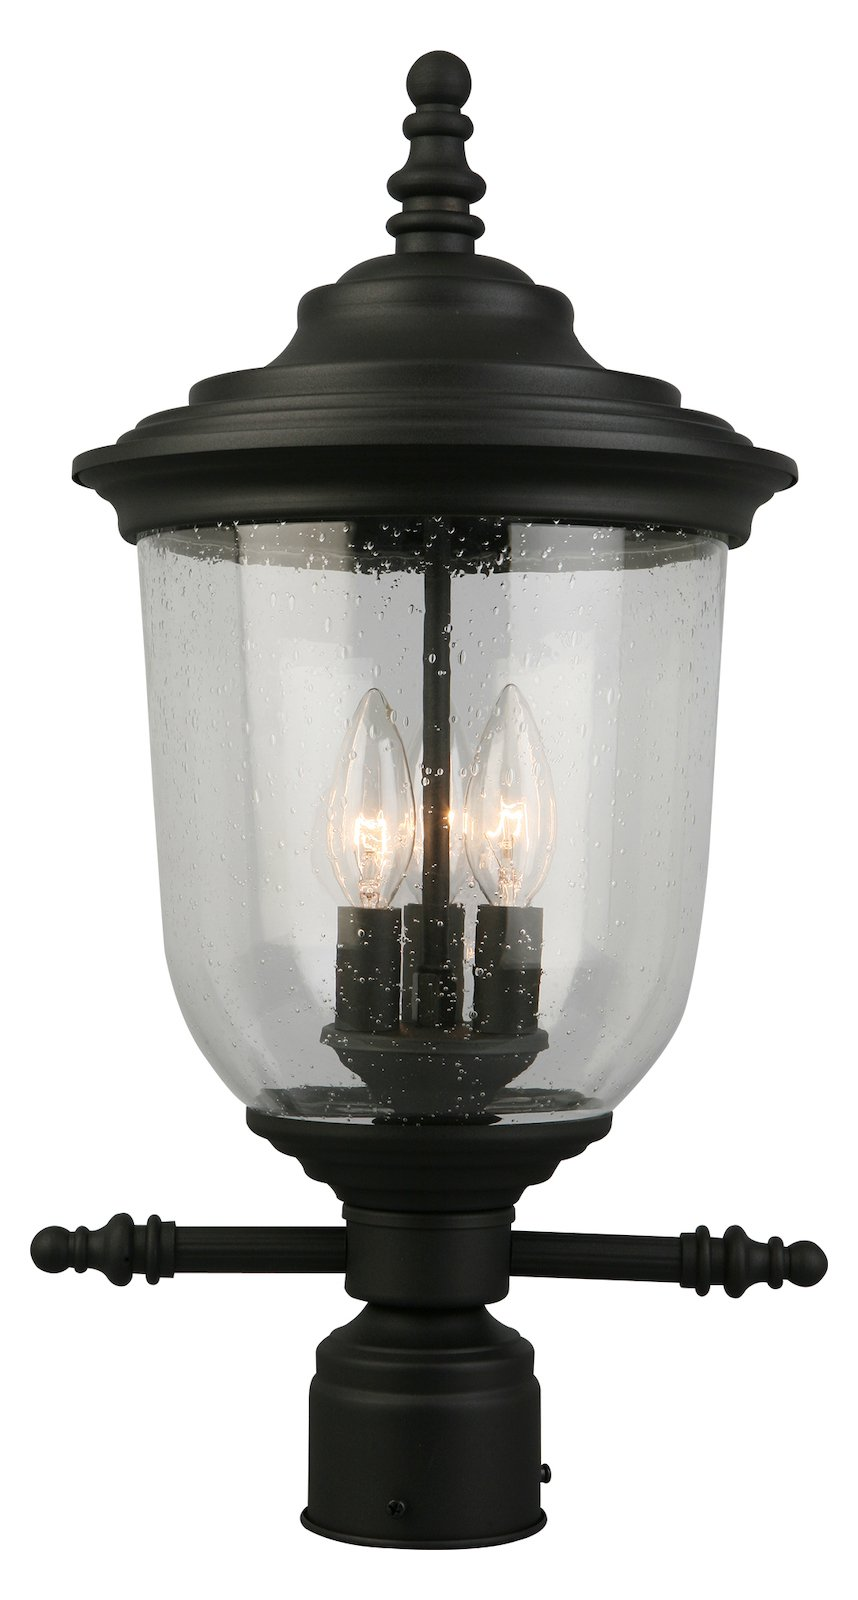 3X60W Outdoor Post Light W/ Matte Black Finish & Clear Seeded Glass